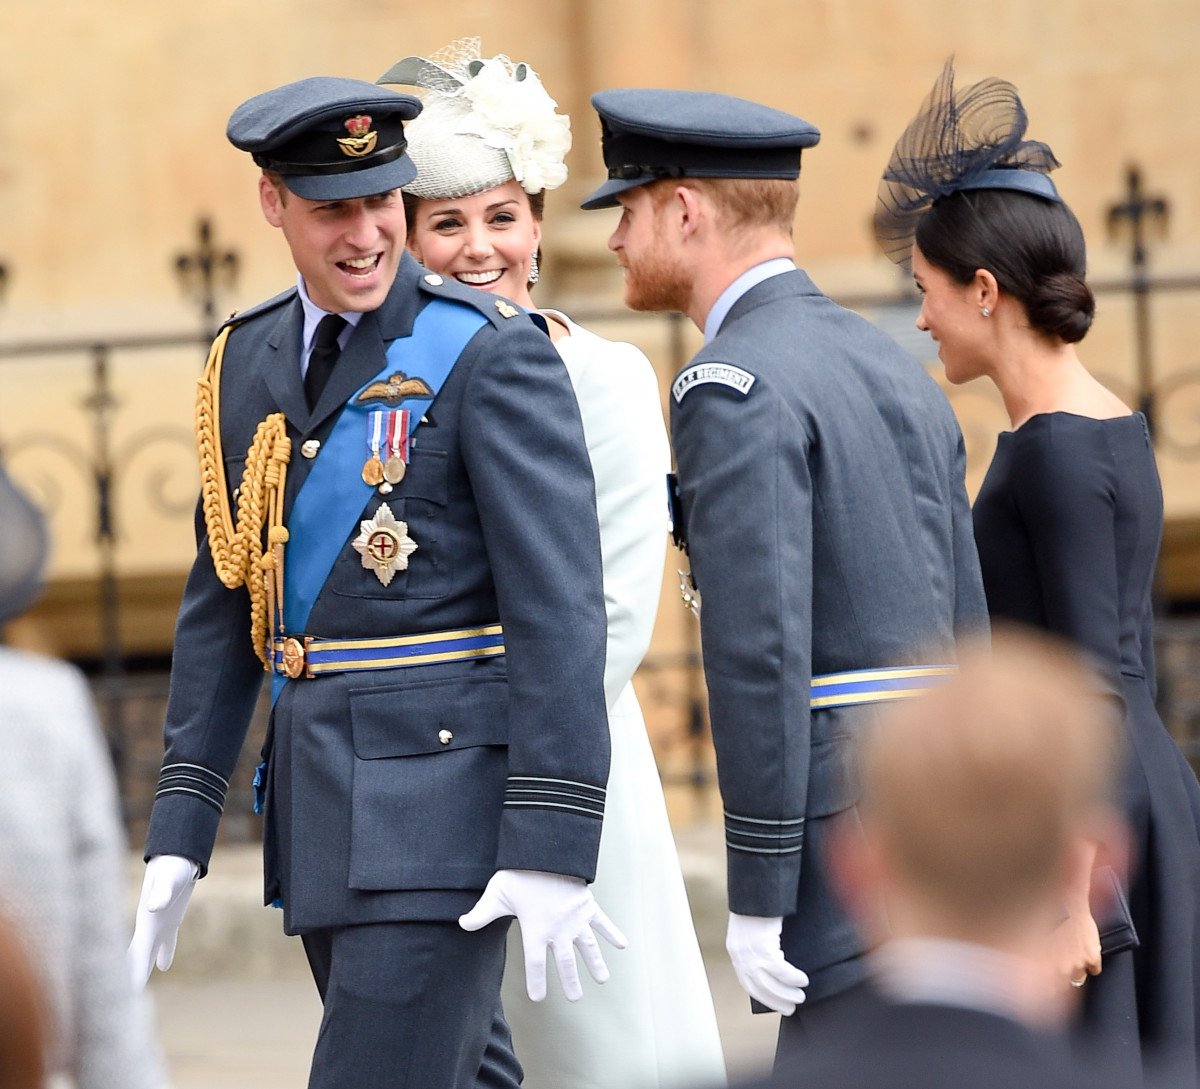 The Queen and other Members of the Royal Family attend Westminster Abbey to mark the centenary of the RAF